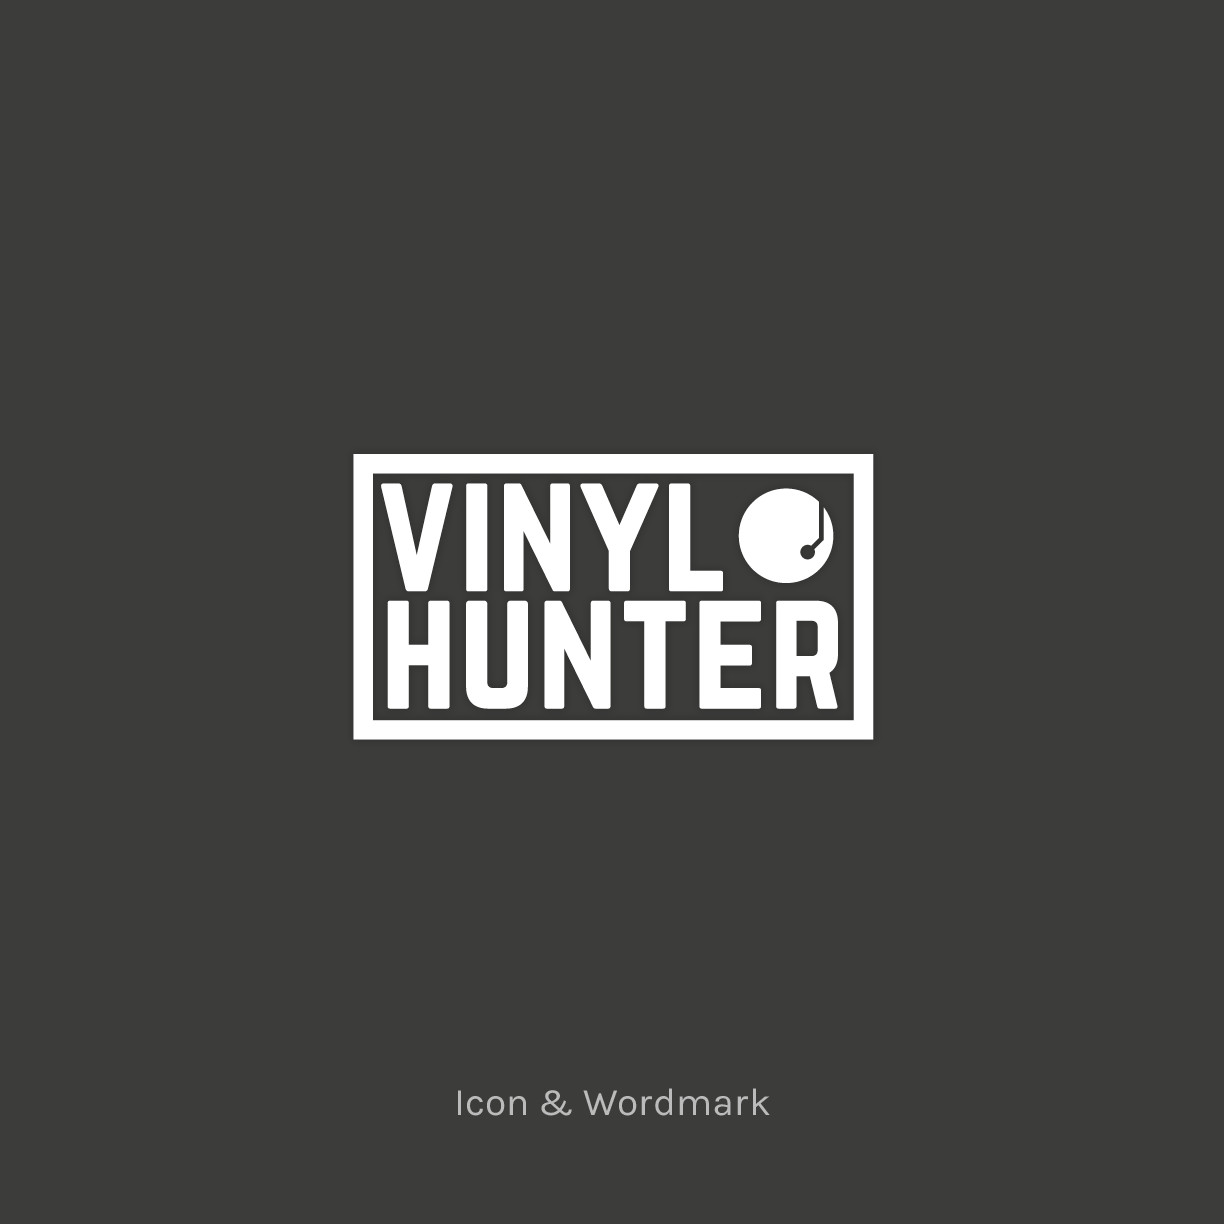 Vinyl Hunter Logo